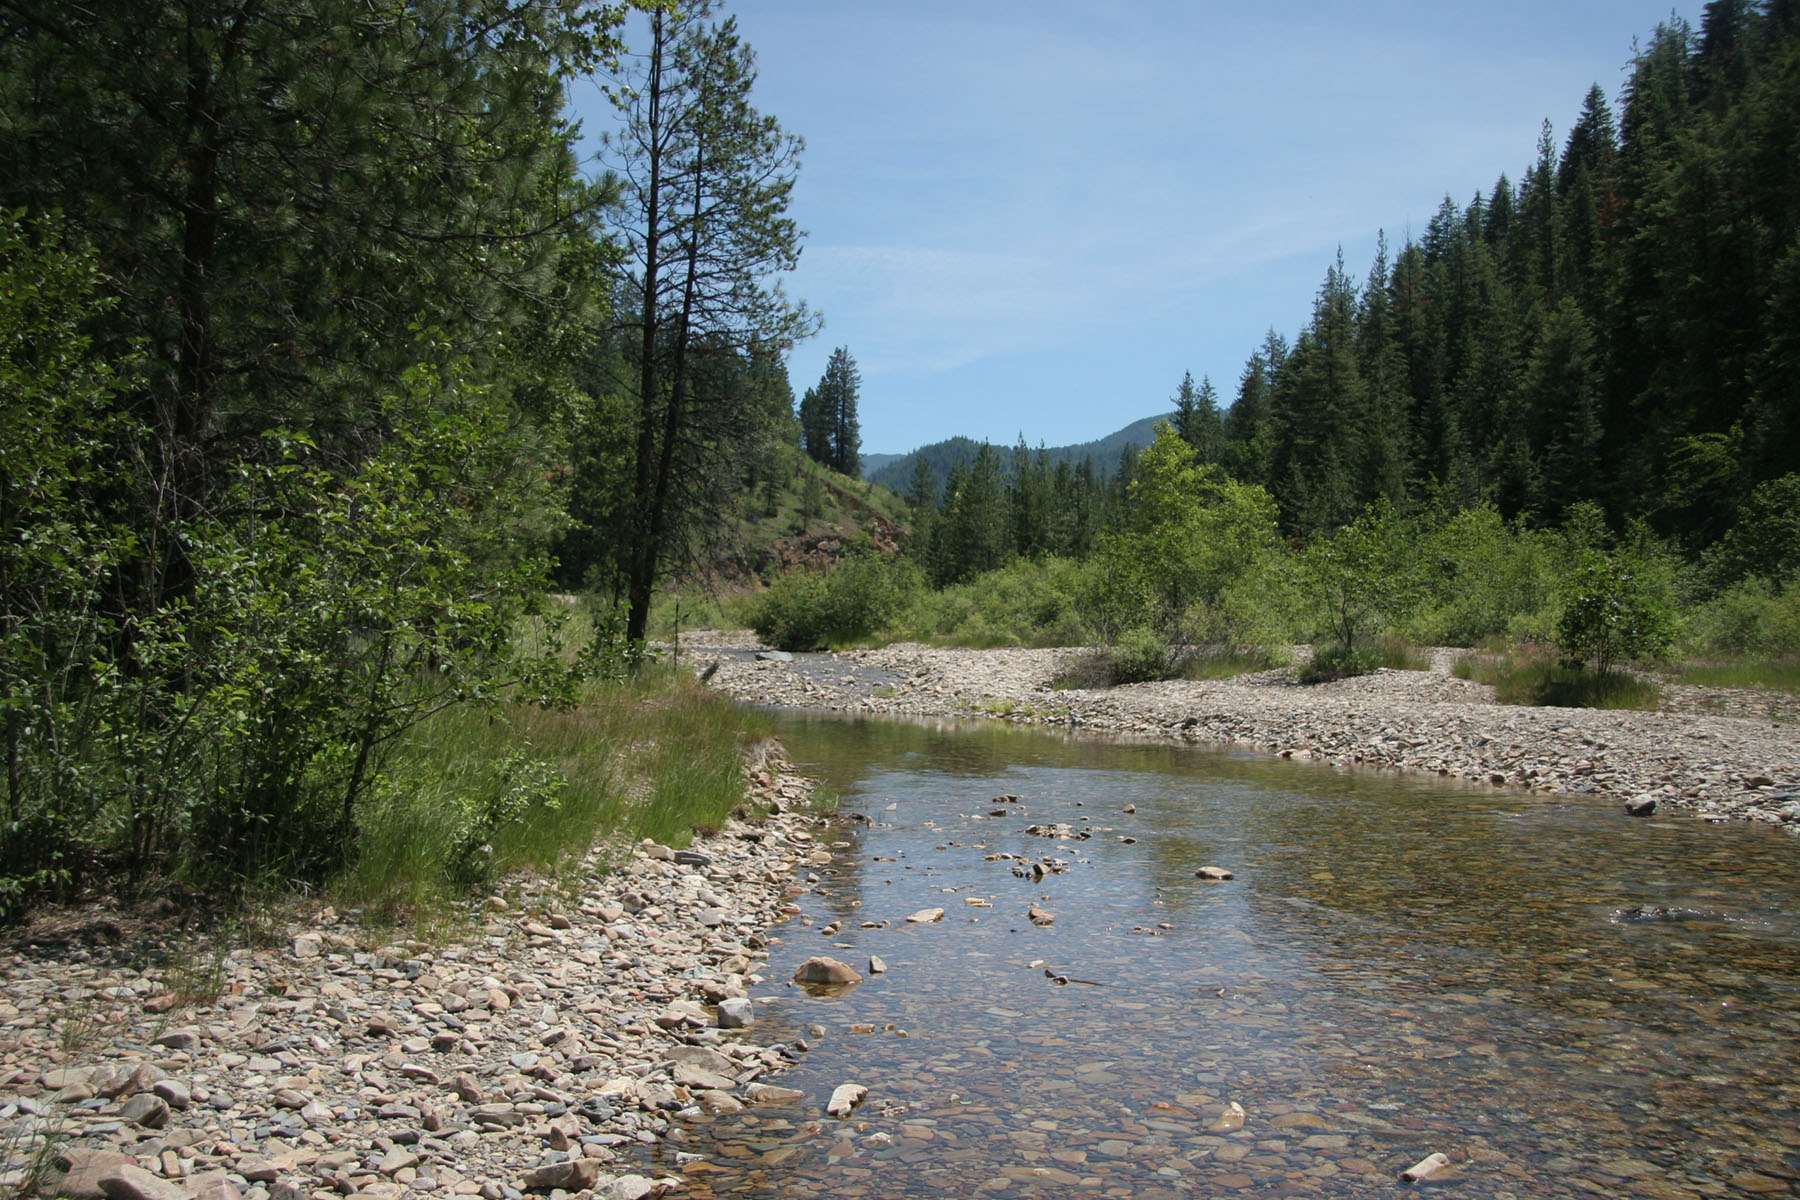 Terreno por un Venta en About 600' of beautiful, fishable Pine Creek NNA 3 East Fork Pine Creek Rd Pinehurst, Idaho, 83850 Estados Unidos